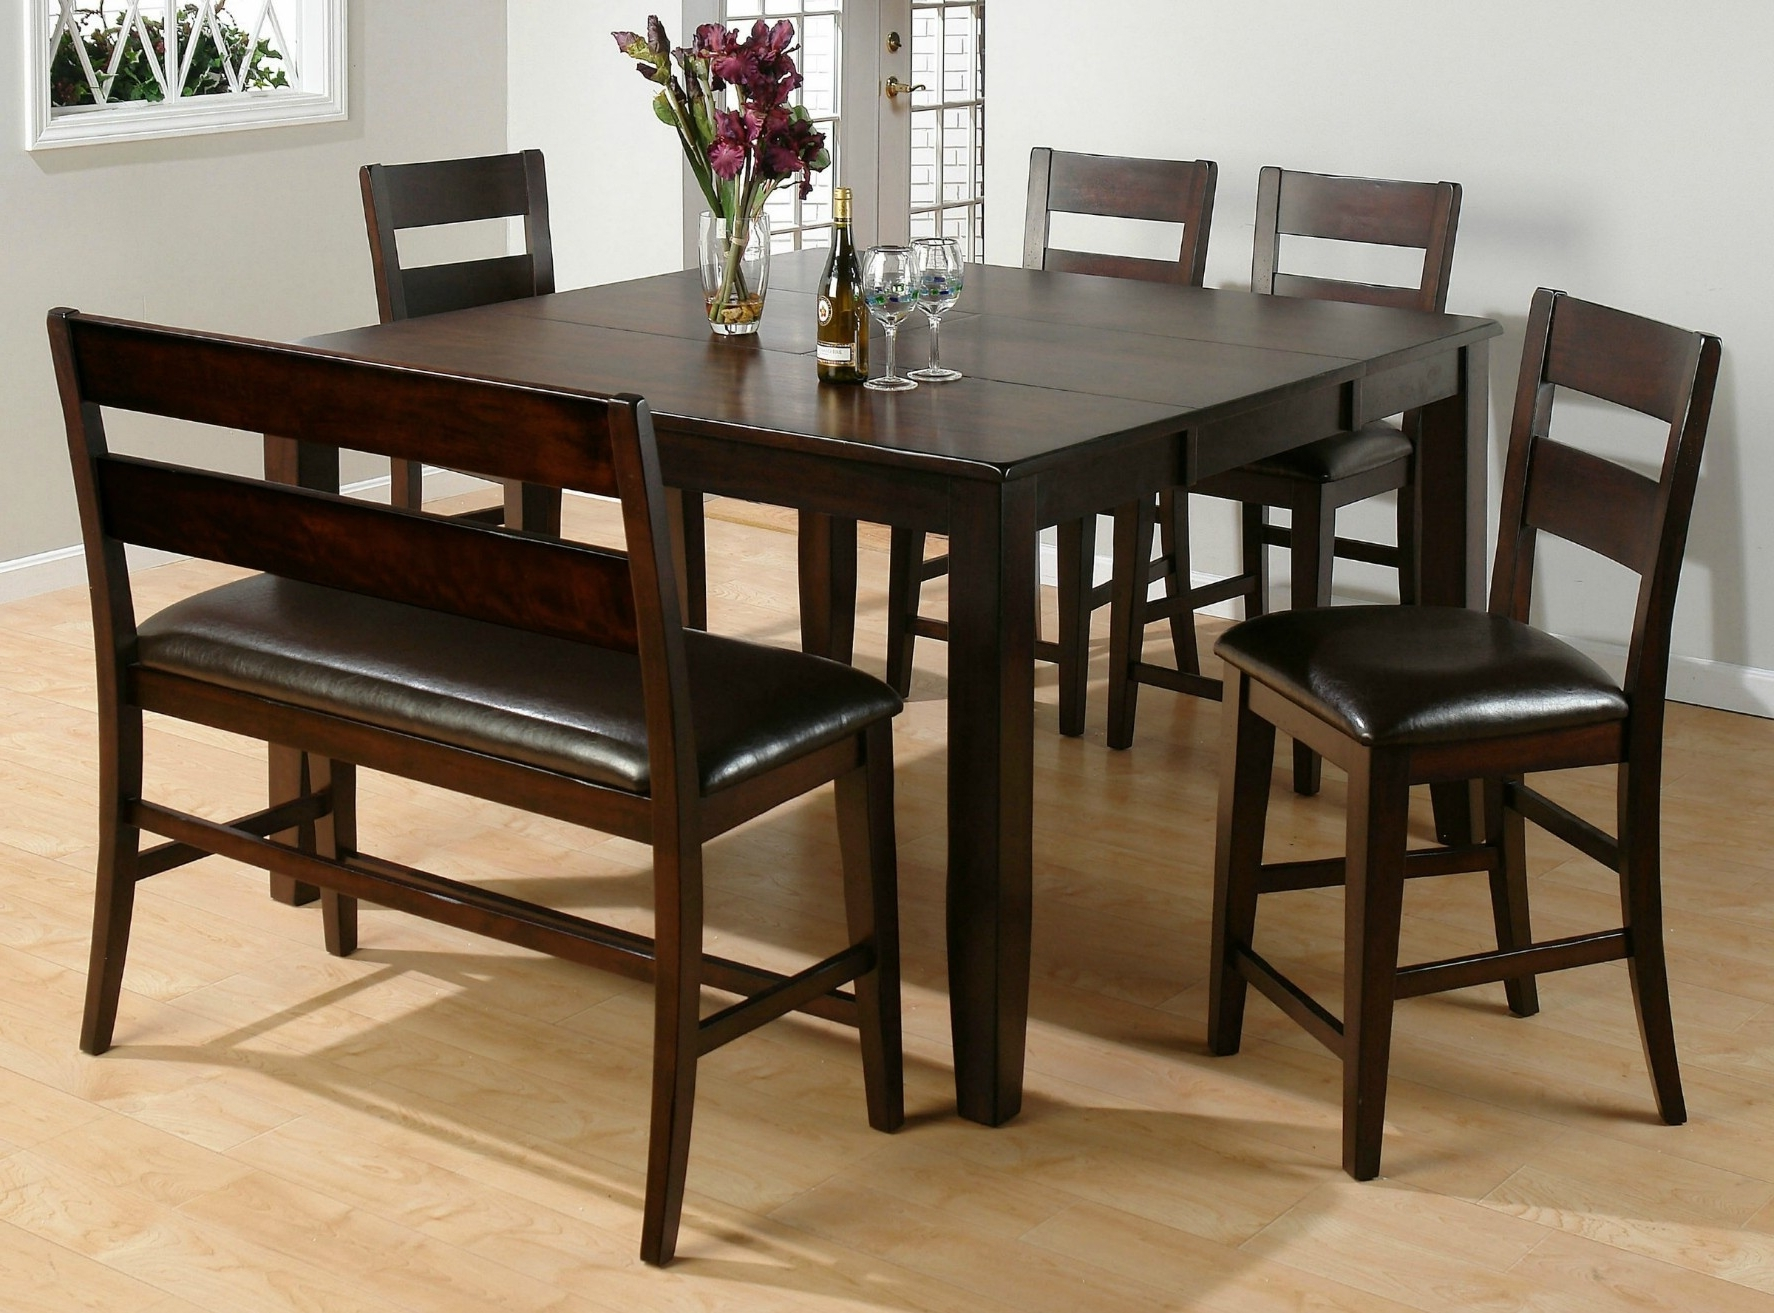 Preferred Bench With Back For Dining Tables Throughout Furniture (View 7 of 25)